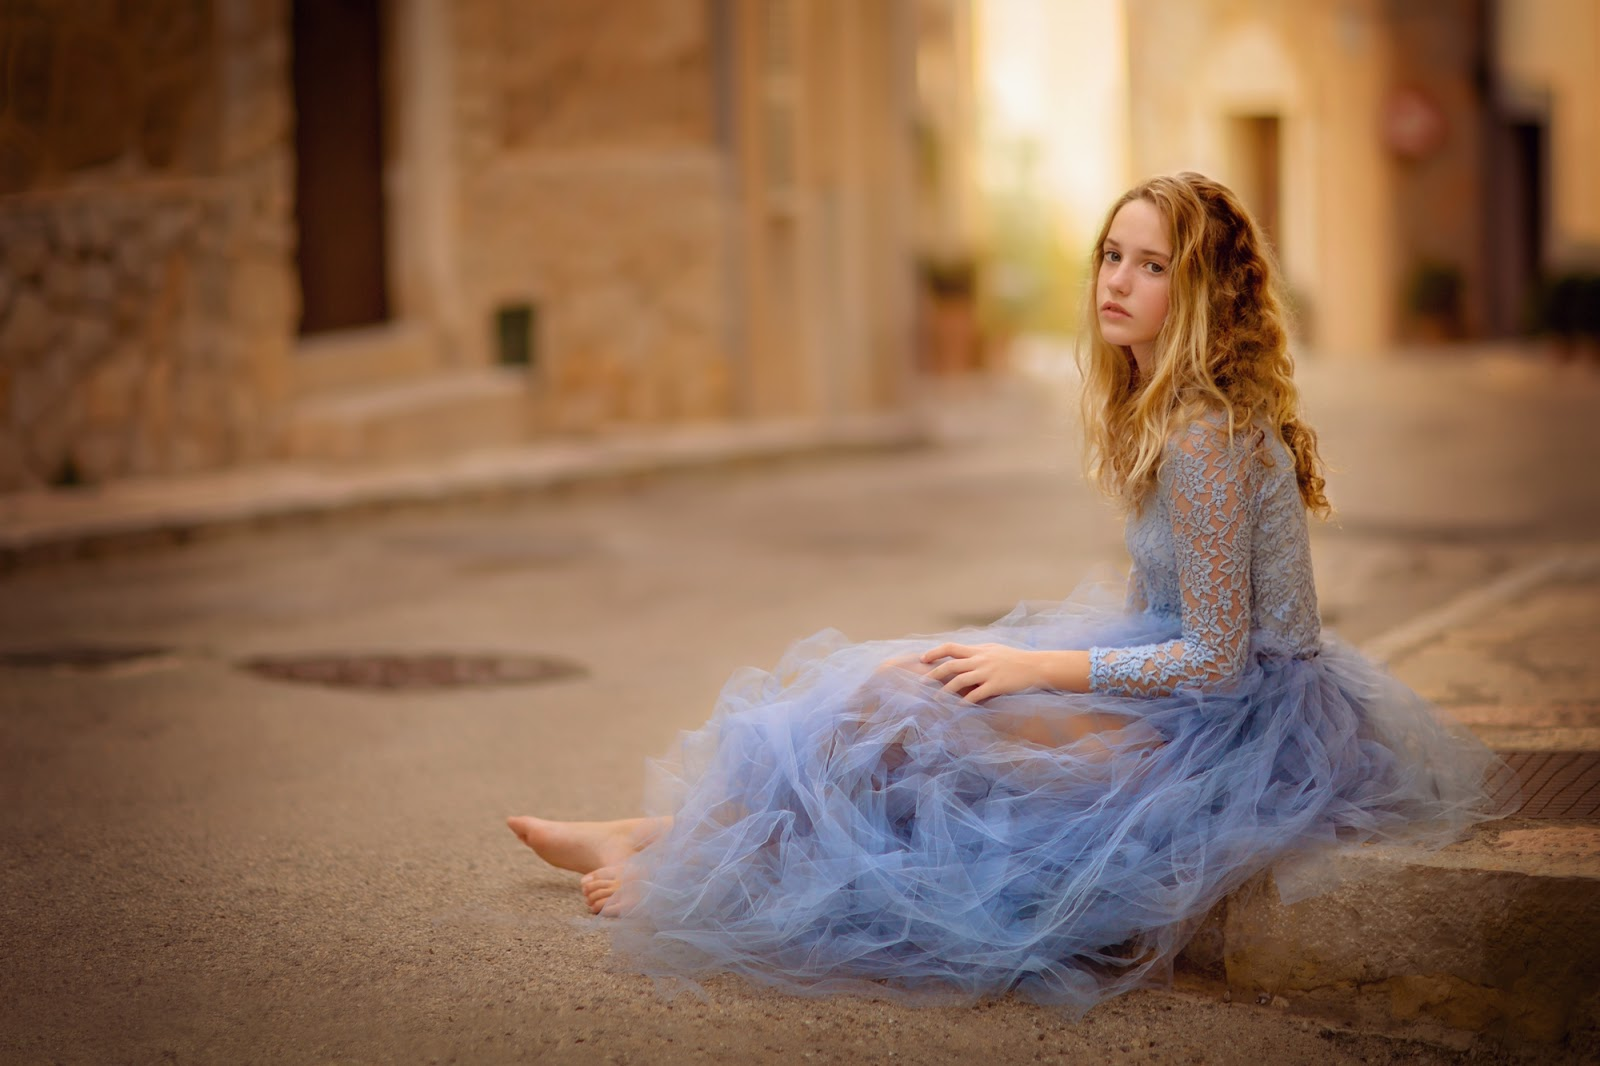 Canon portrait of a young woman sitting on the side walk in a gorgeous blue dress during sunset at Mallorca by Willie Kers